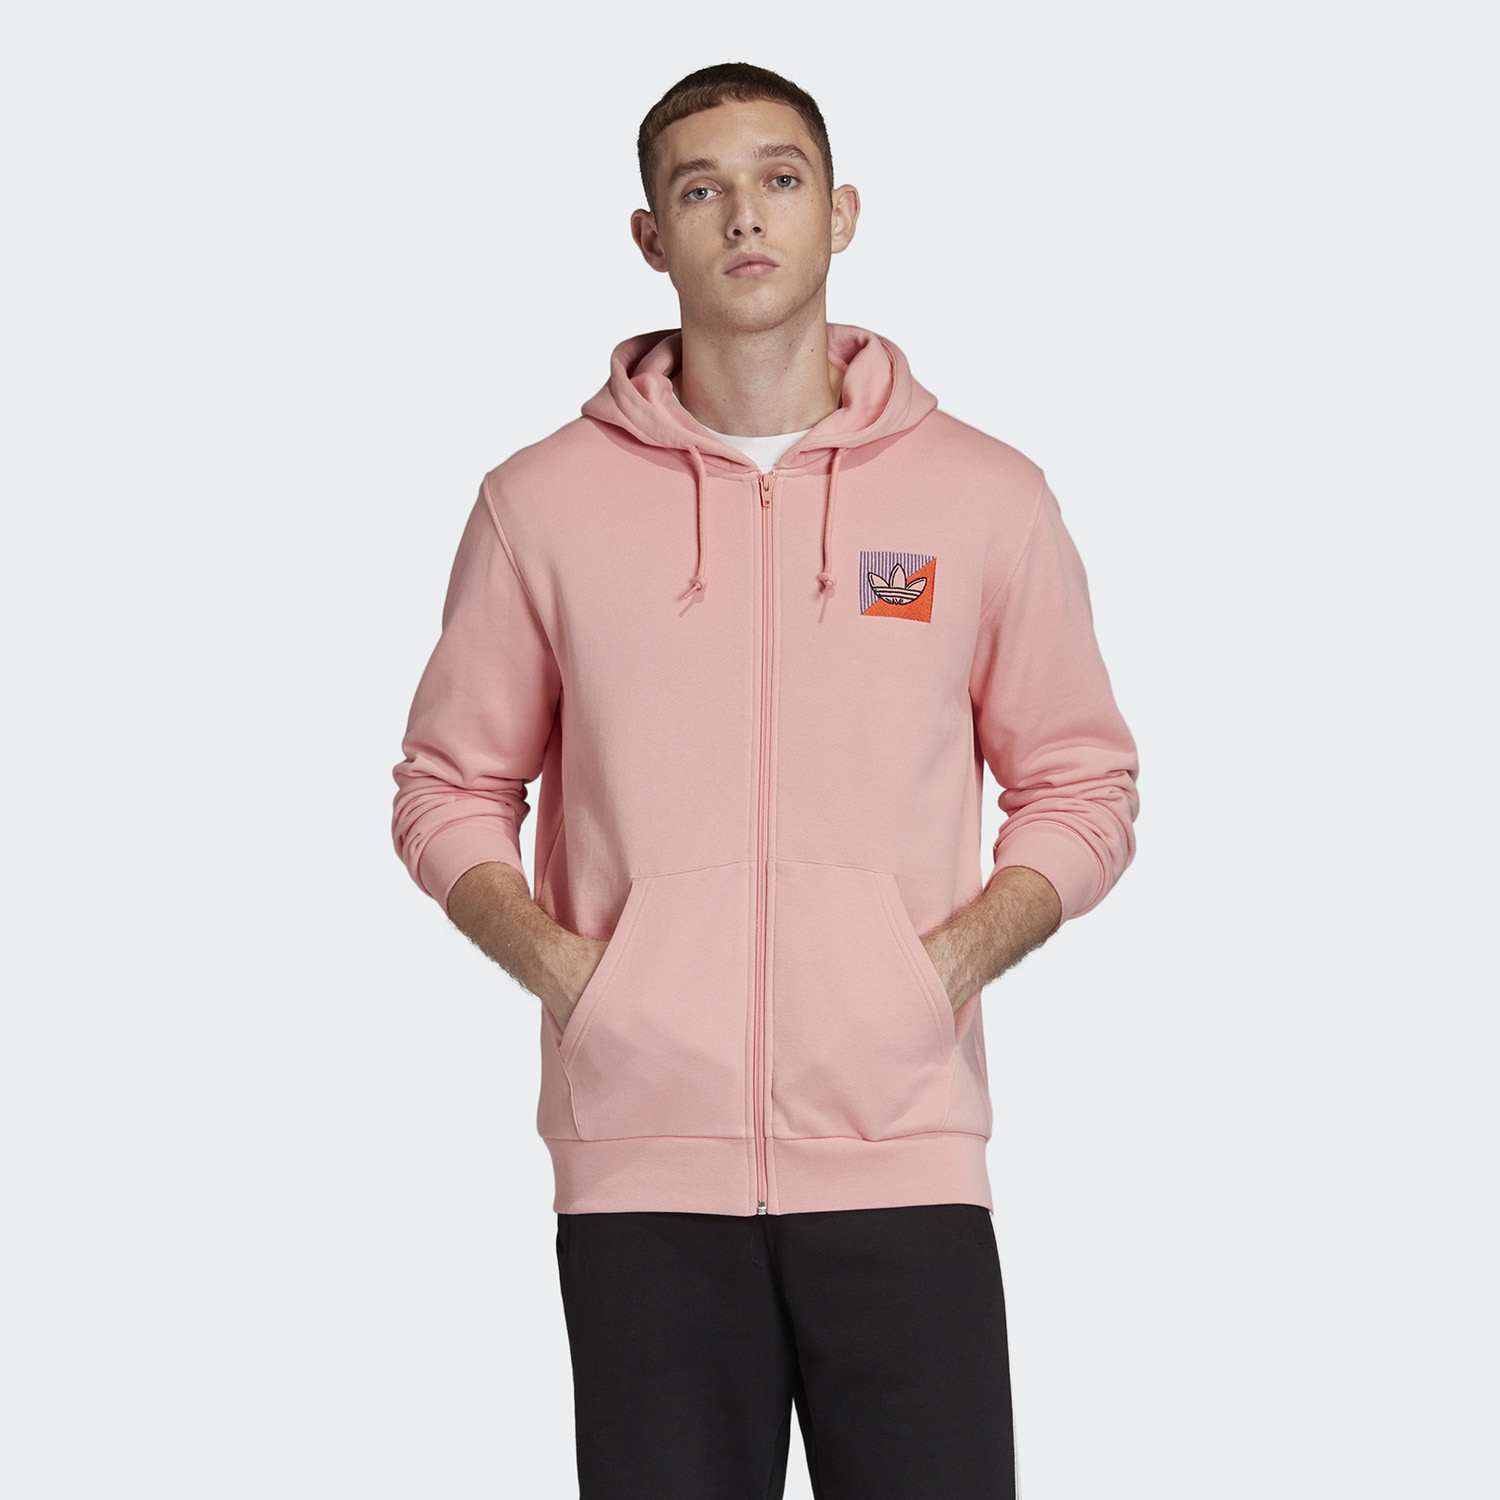 adidas Originals Diagonal Embroidered Men's Full Zip Hoodie (9000045523_39533)